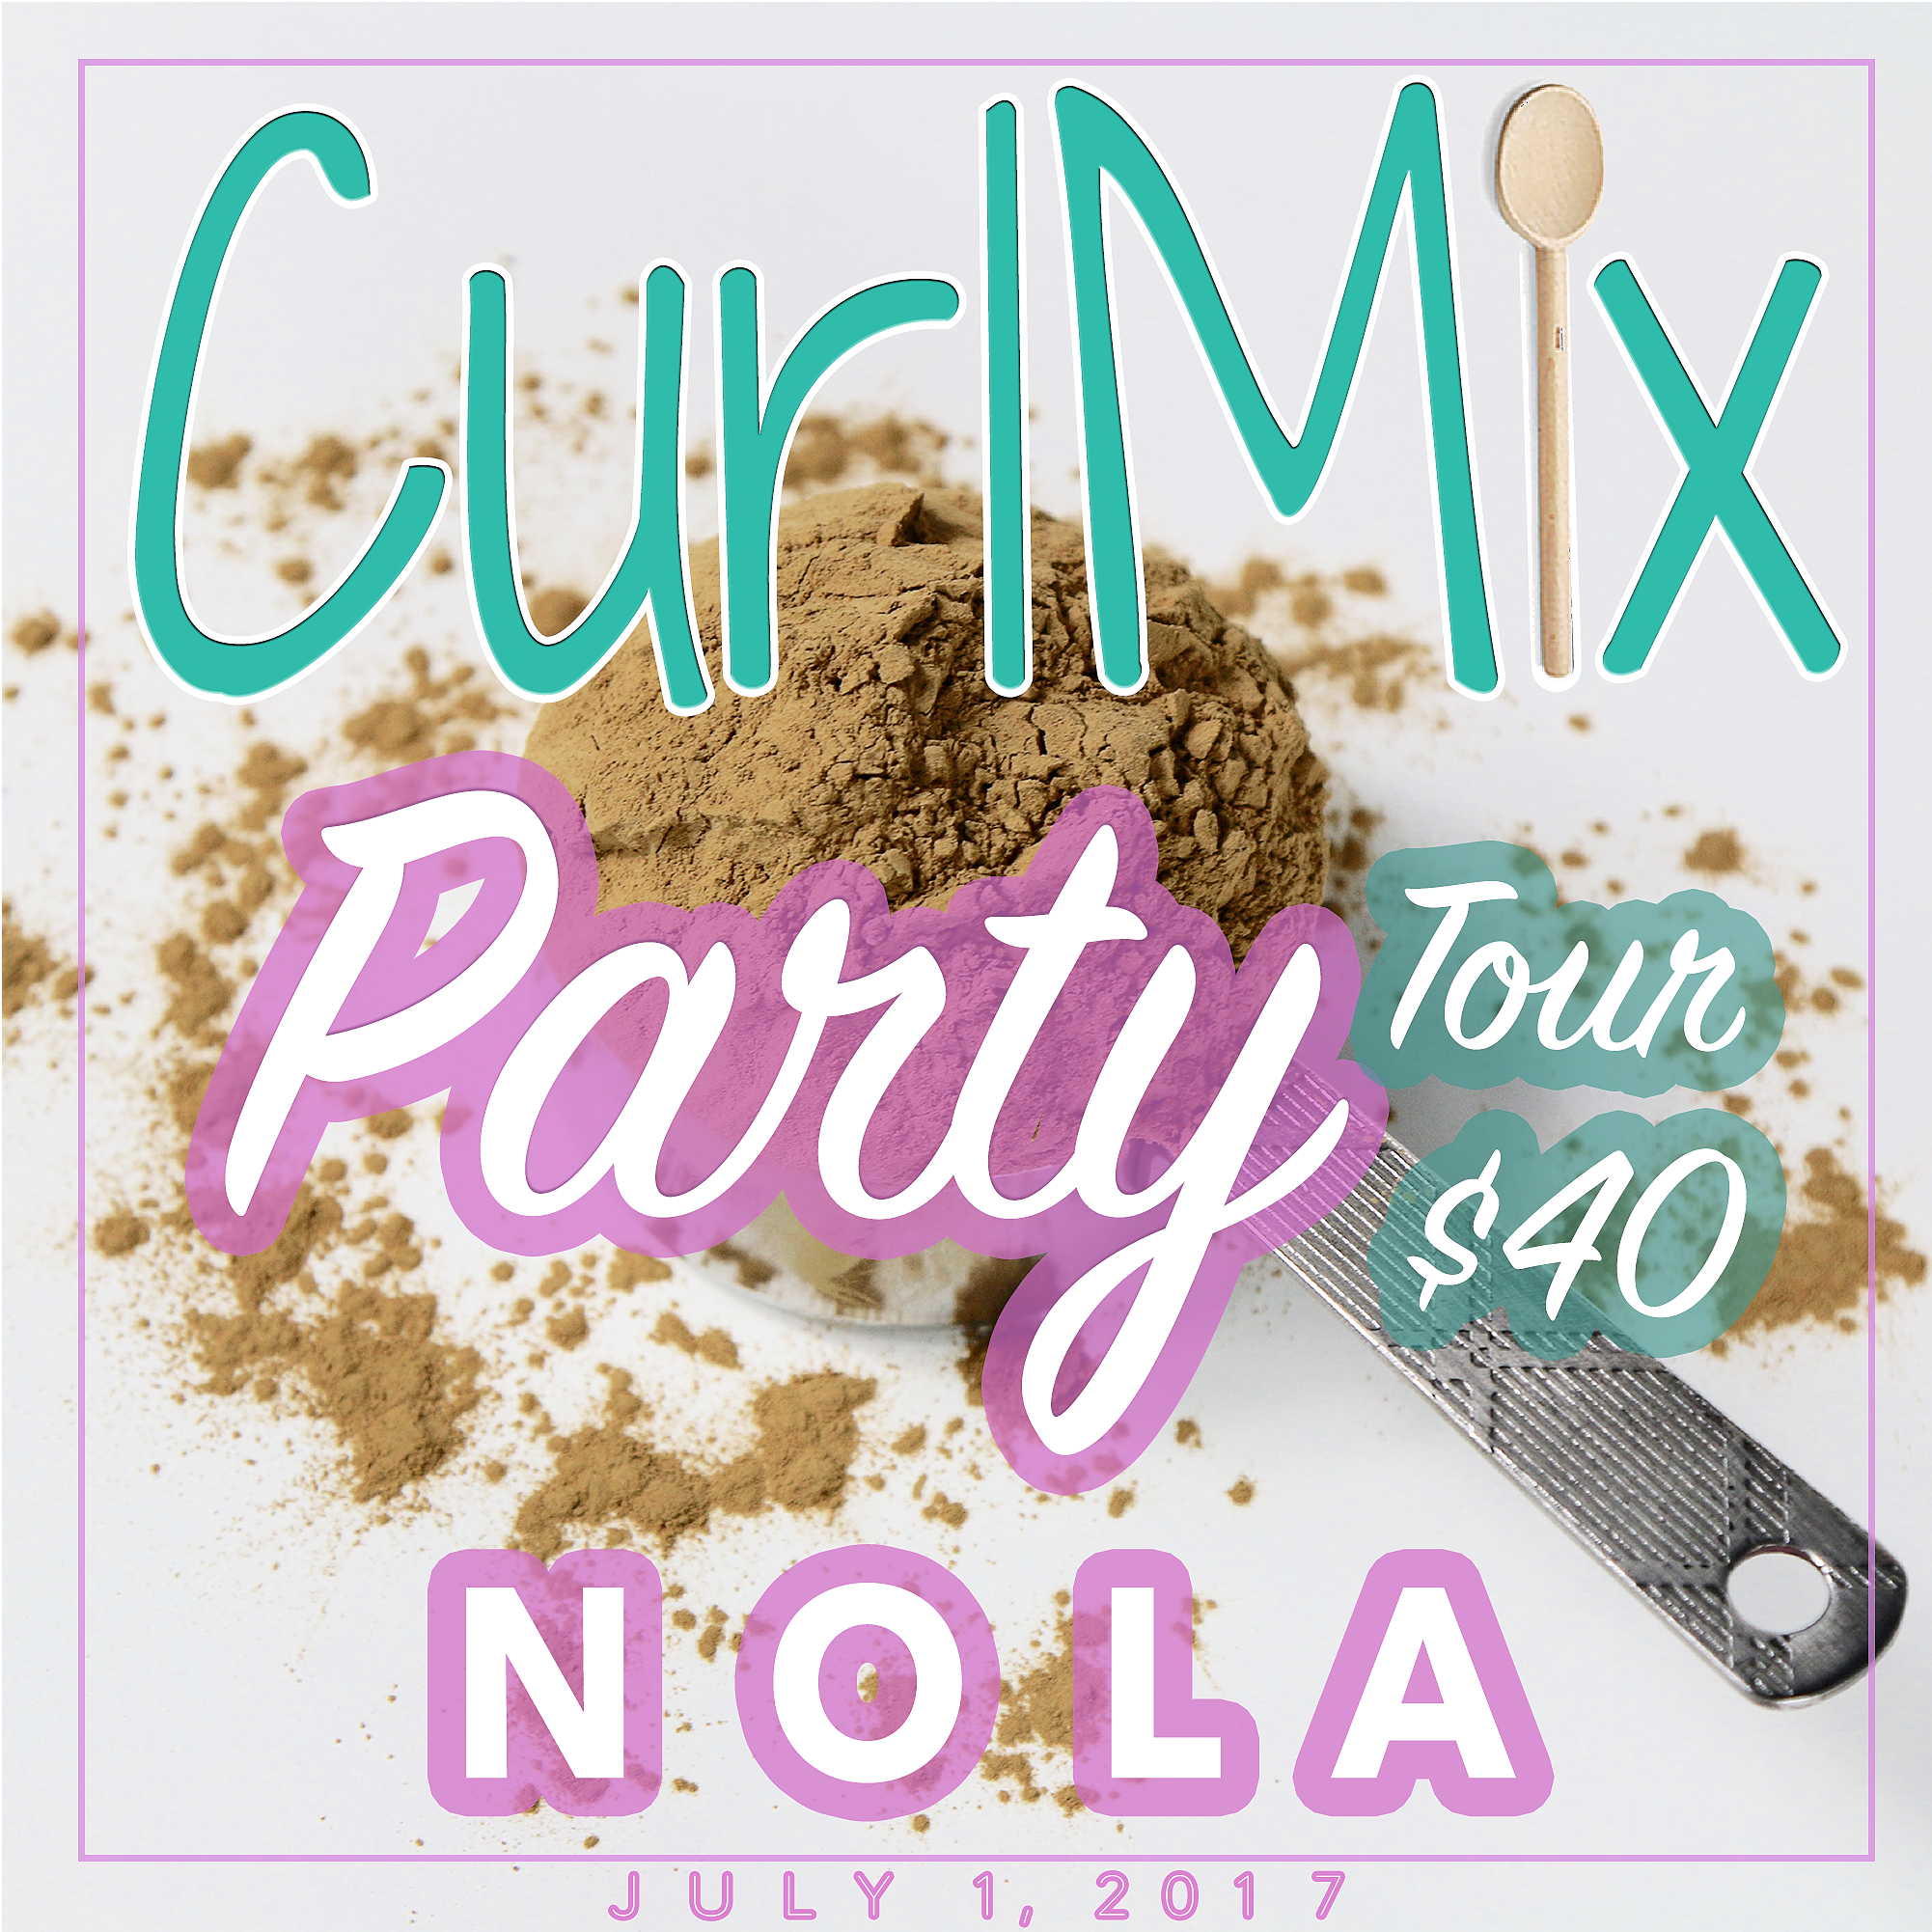 CurlMix Party Tour New Orleans, Saturday, July 1, 2017